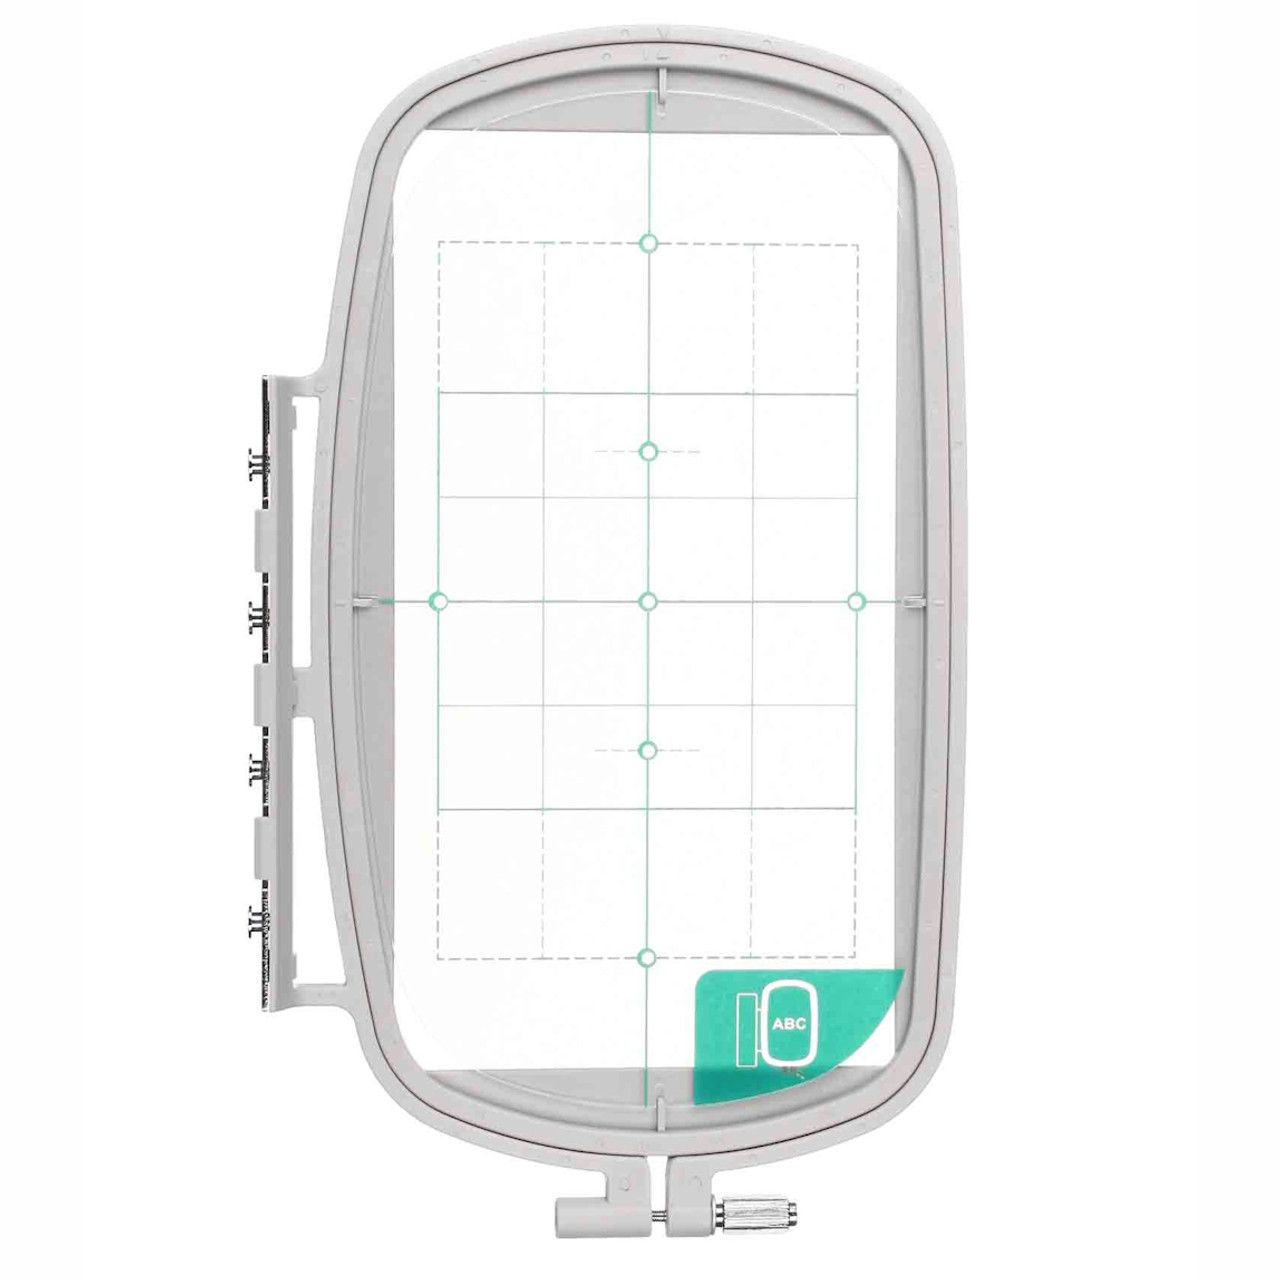 Brother SA434 Large Embroidery Hoop $54.99 - FREE SHIPPING!